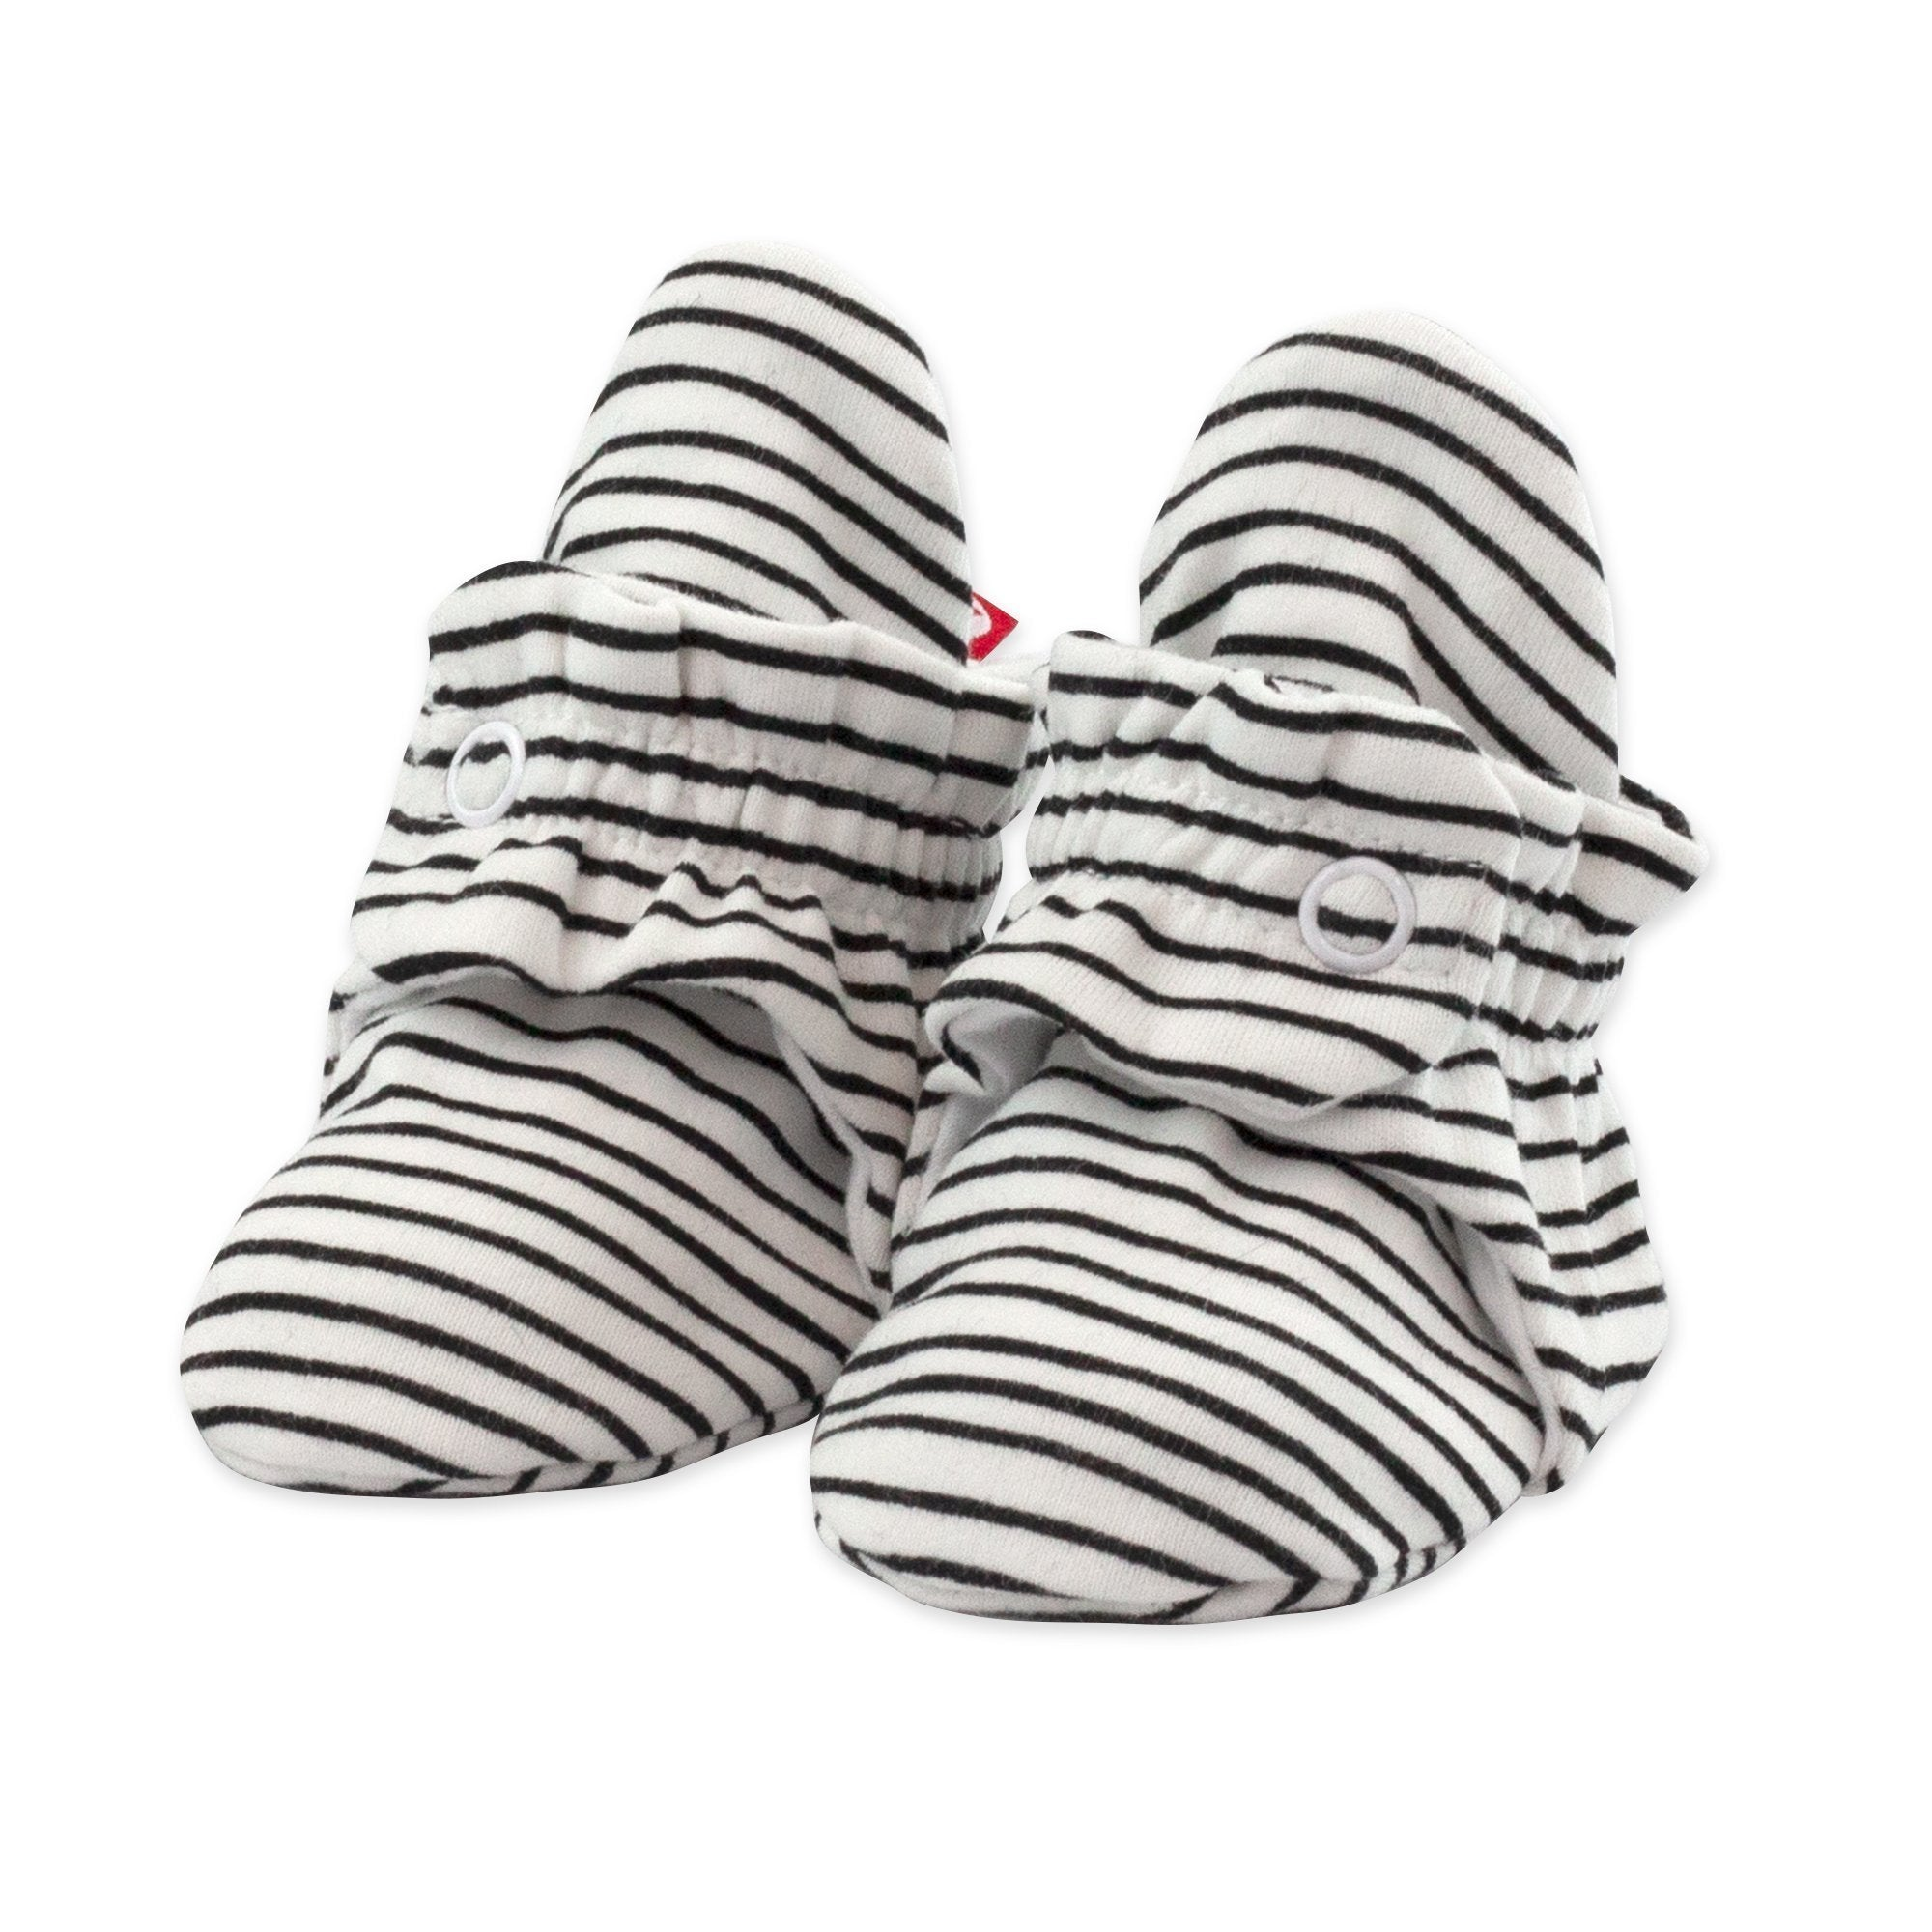 Zutano Organic Cotton Booties - Black Pencil Stripe